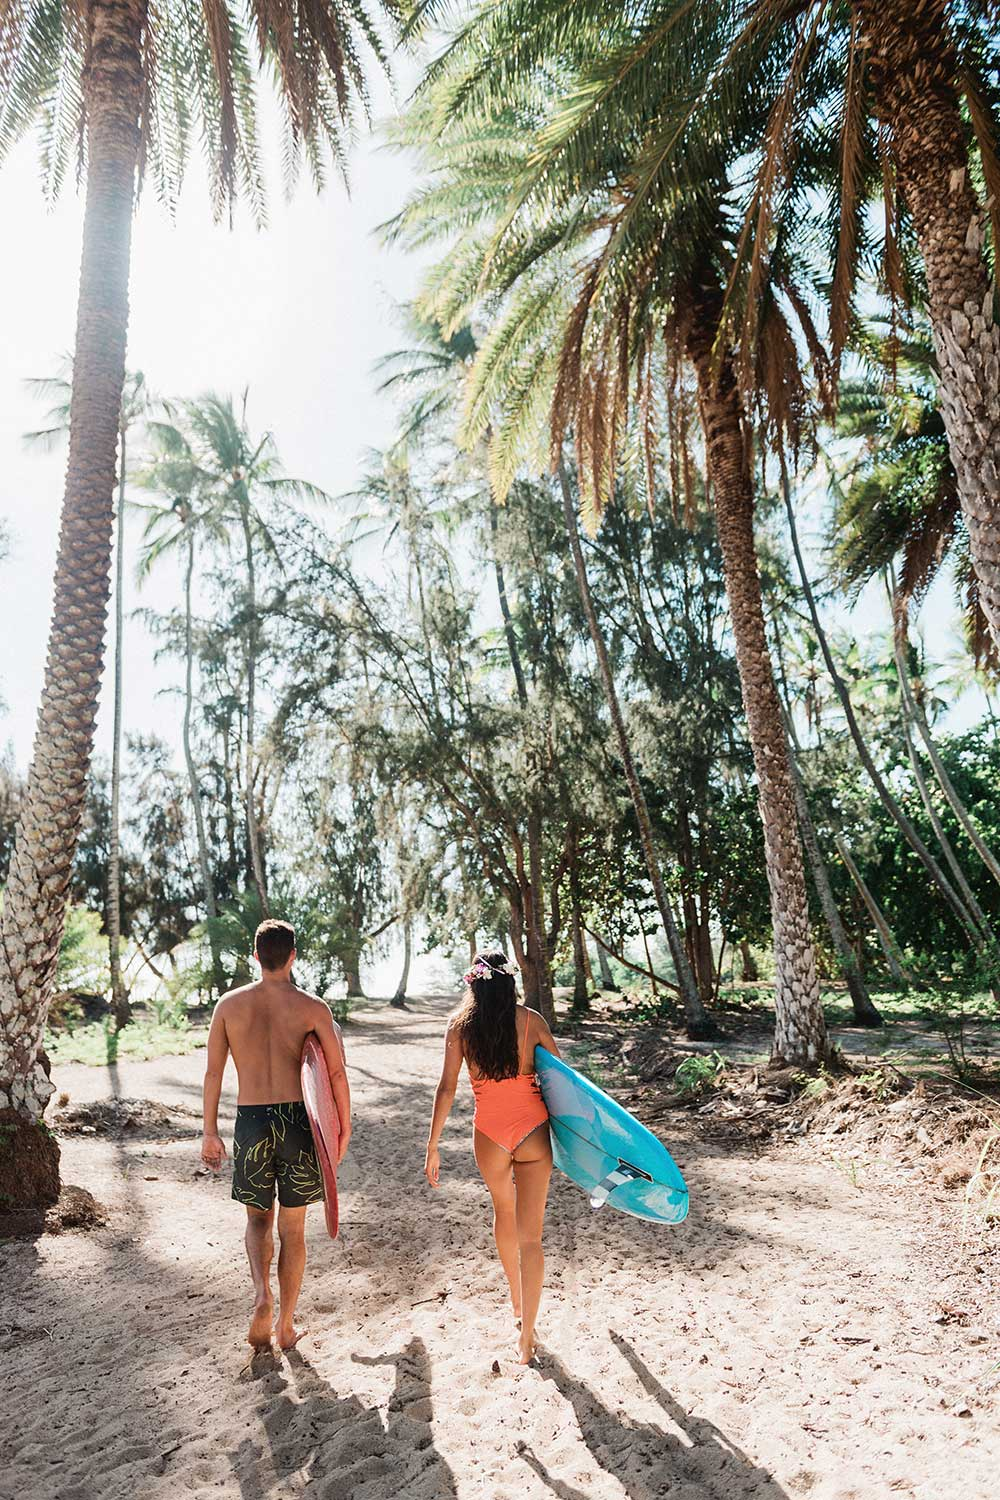 Man and woman in swimsuits walking to beach